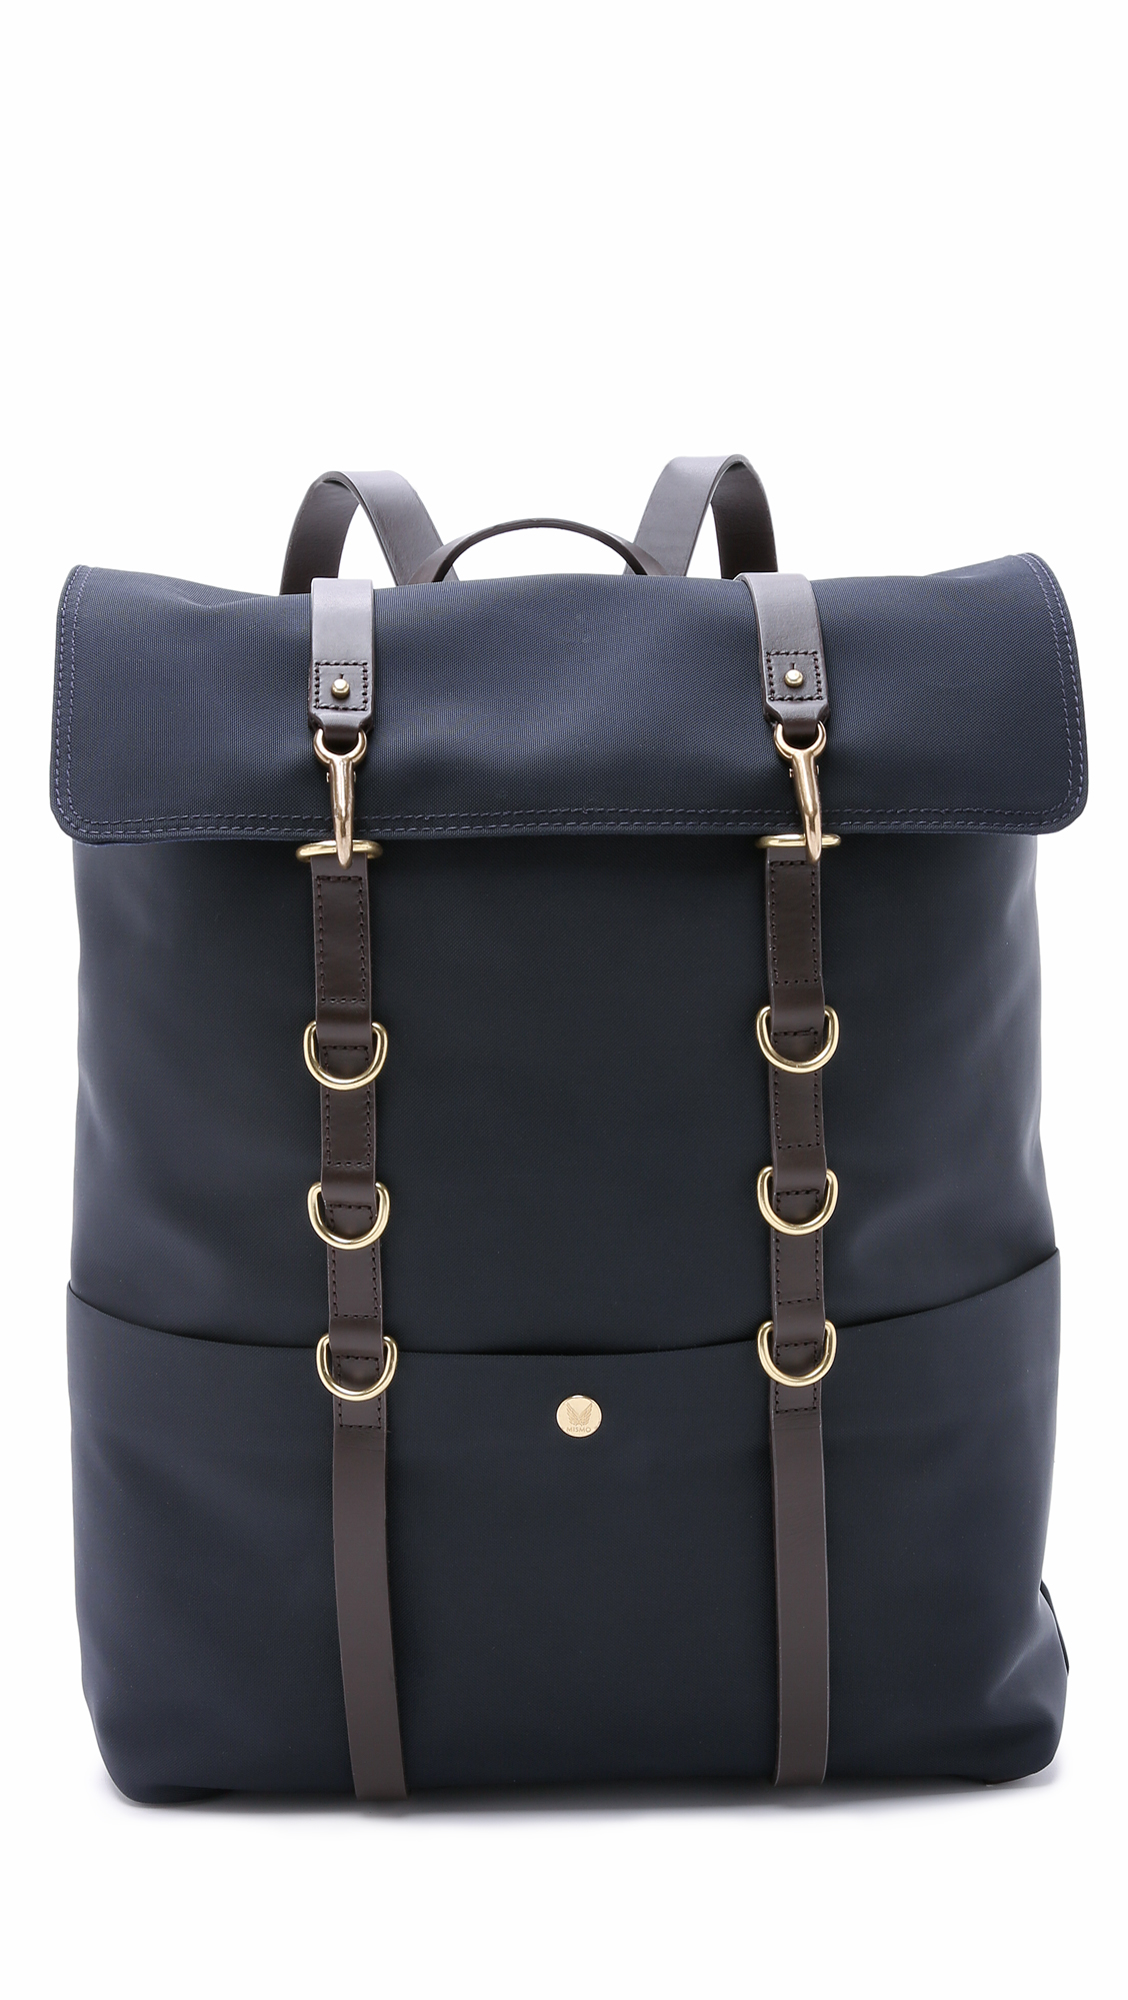 MISMO square backpack